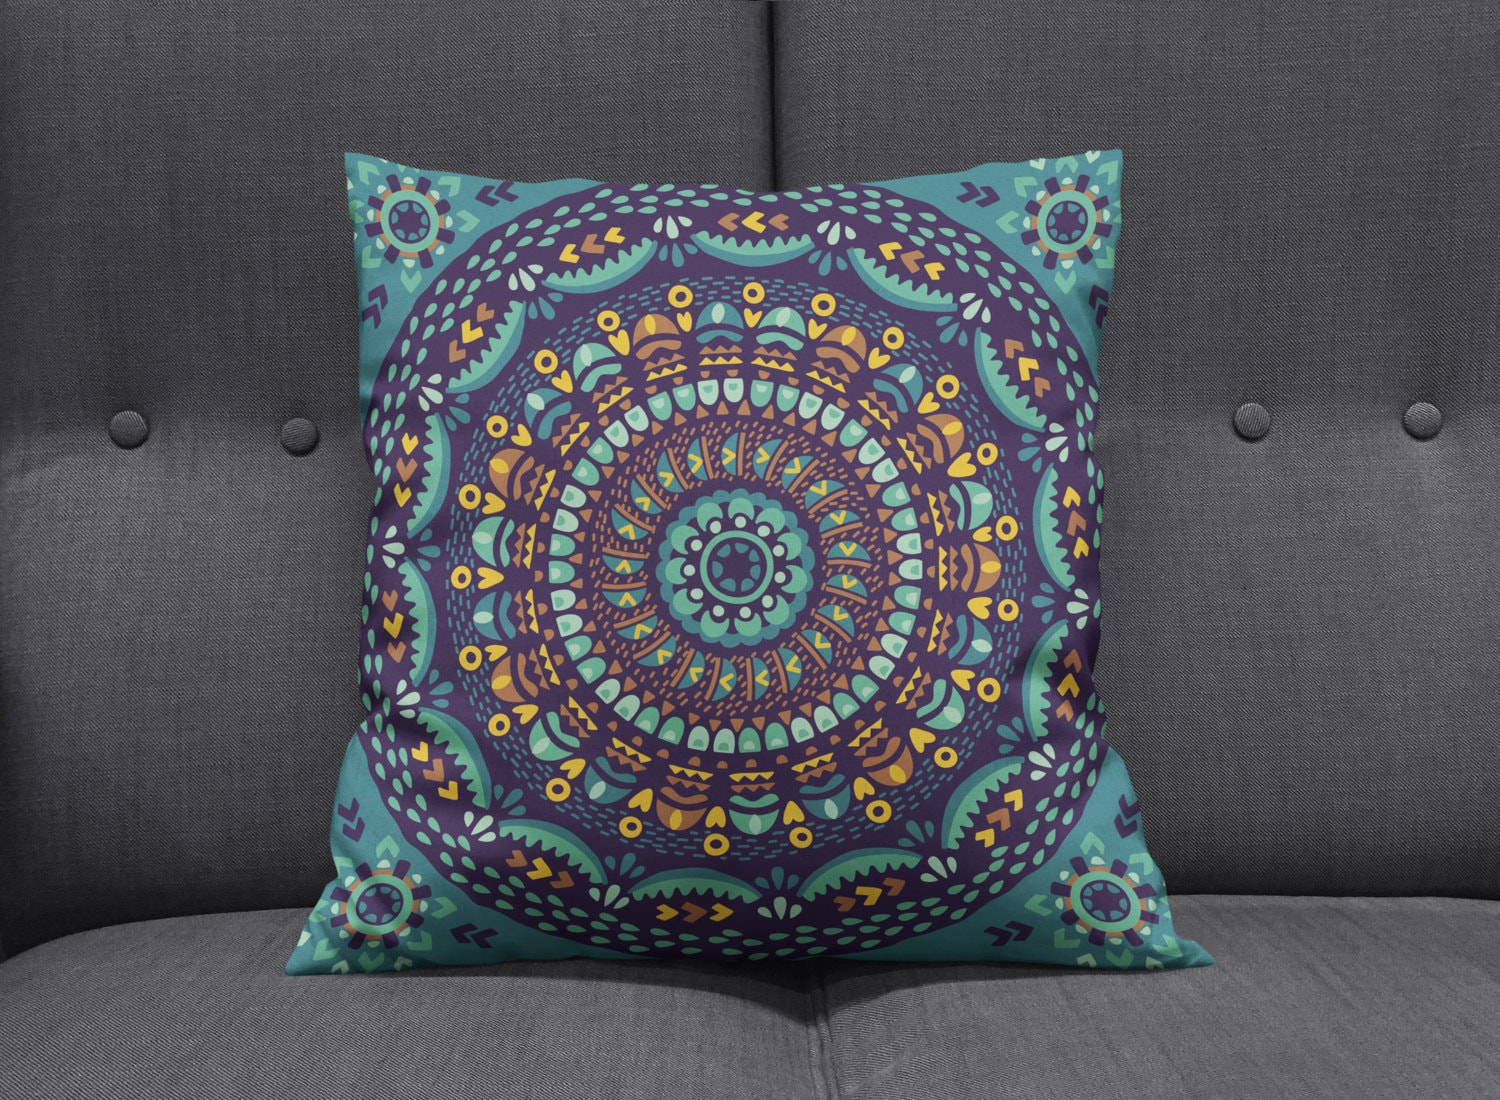 Boho Chic Hippie Mandala Throw Pillows Square by FolkandFunky